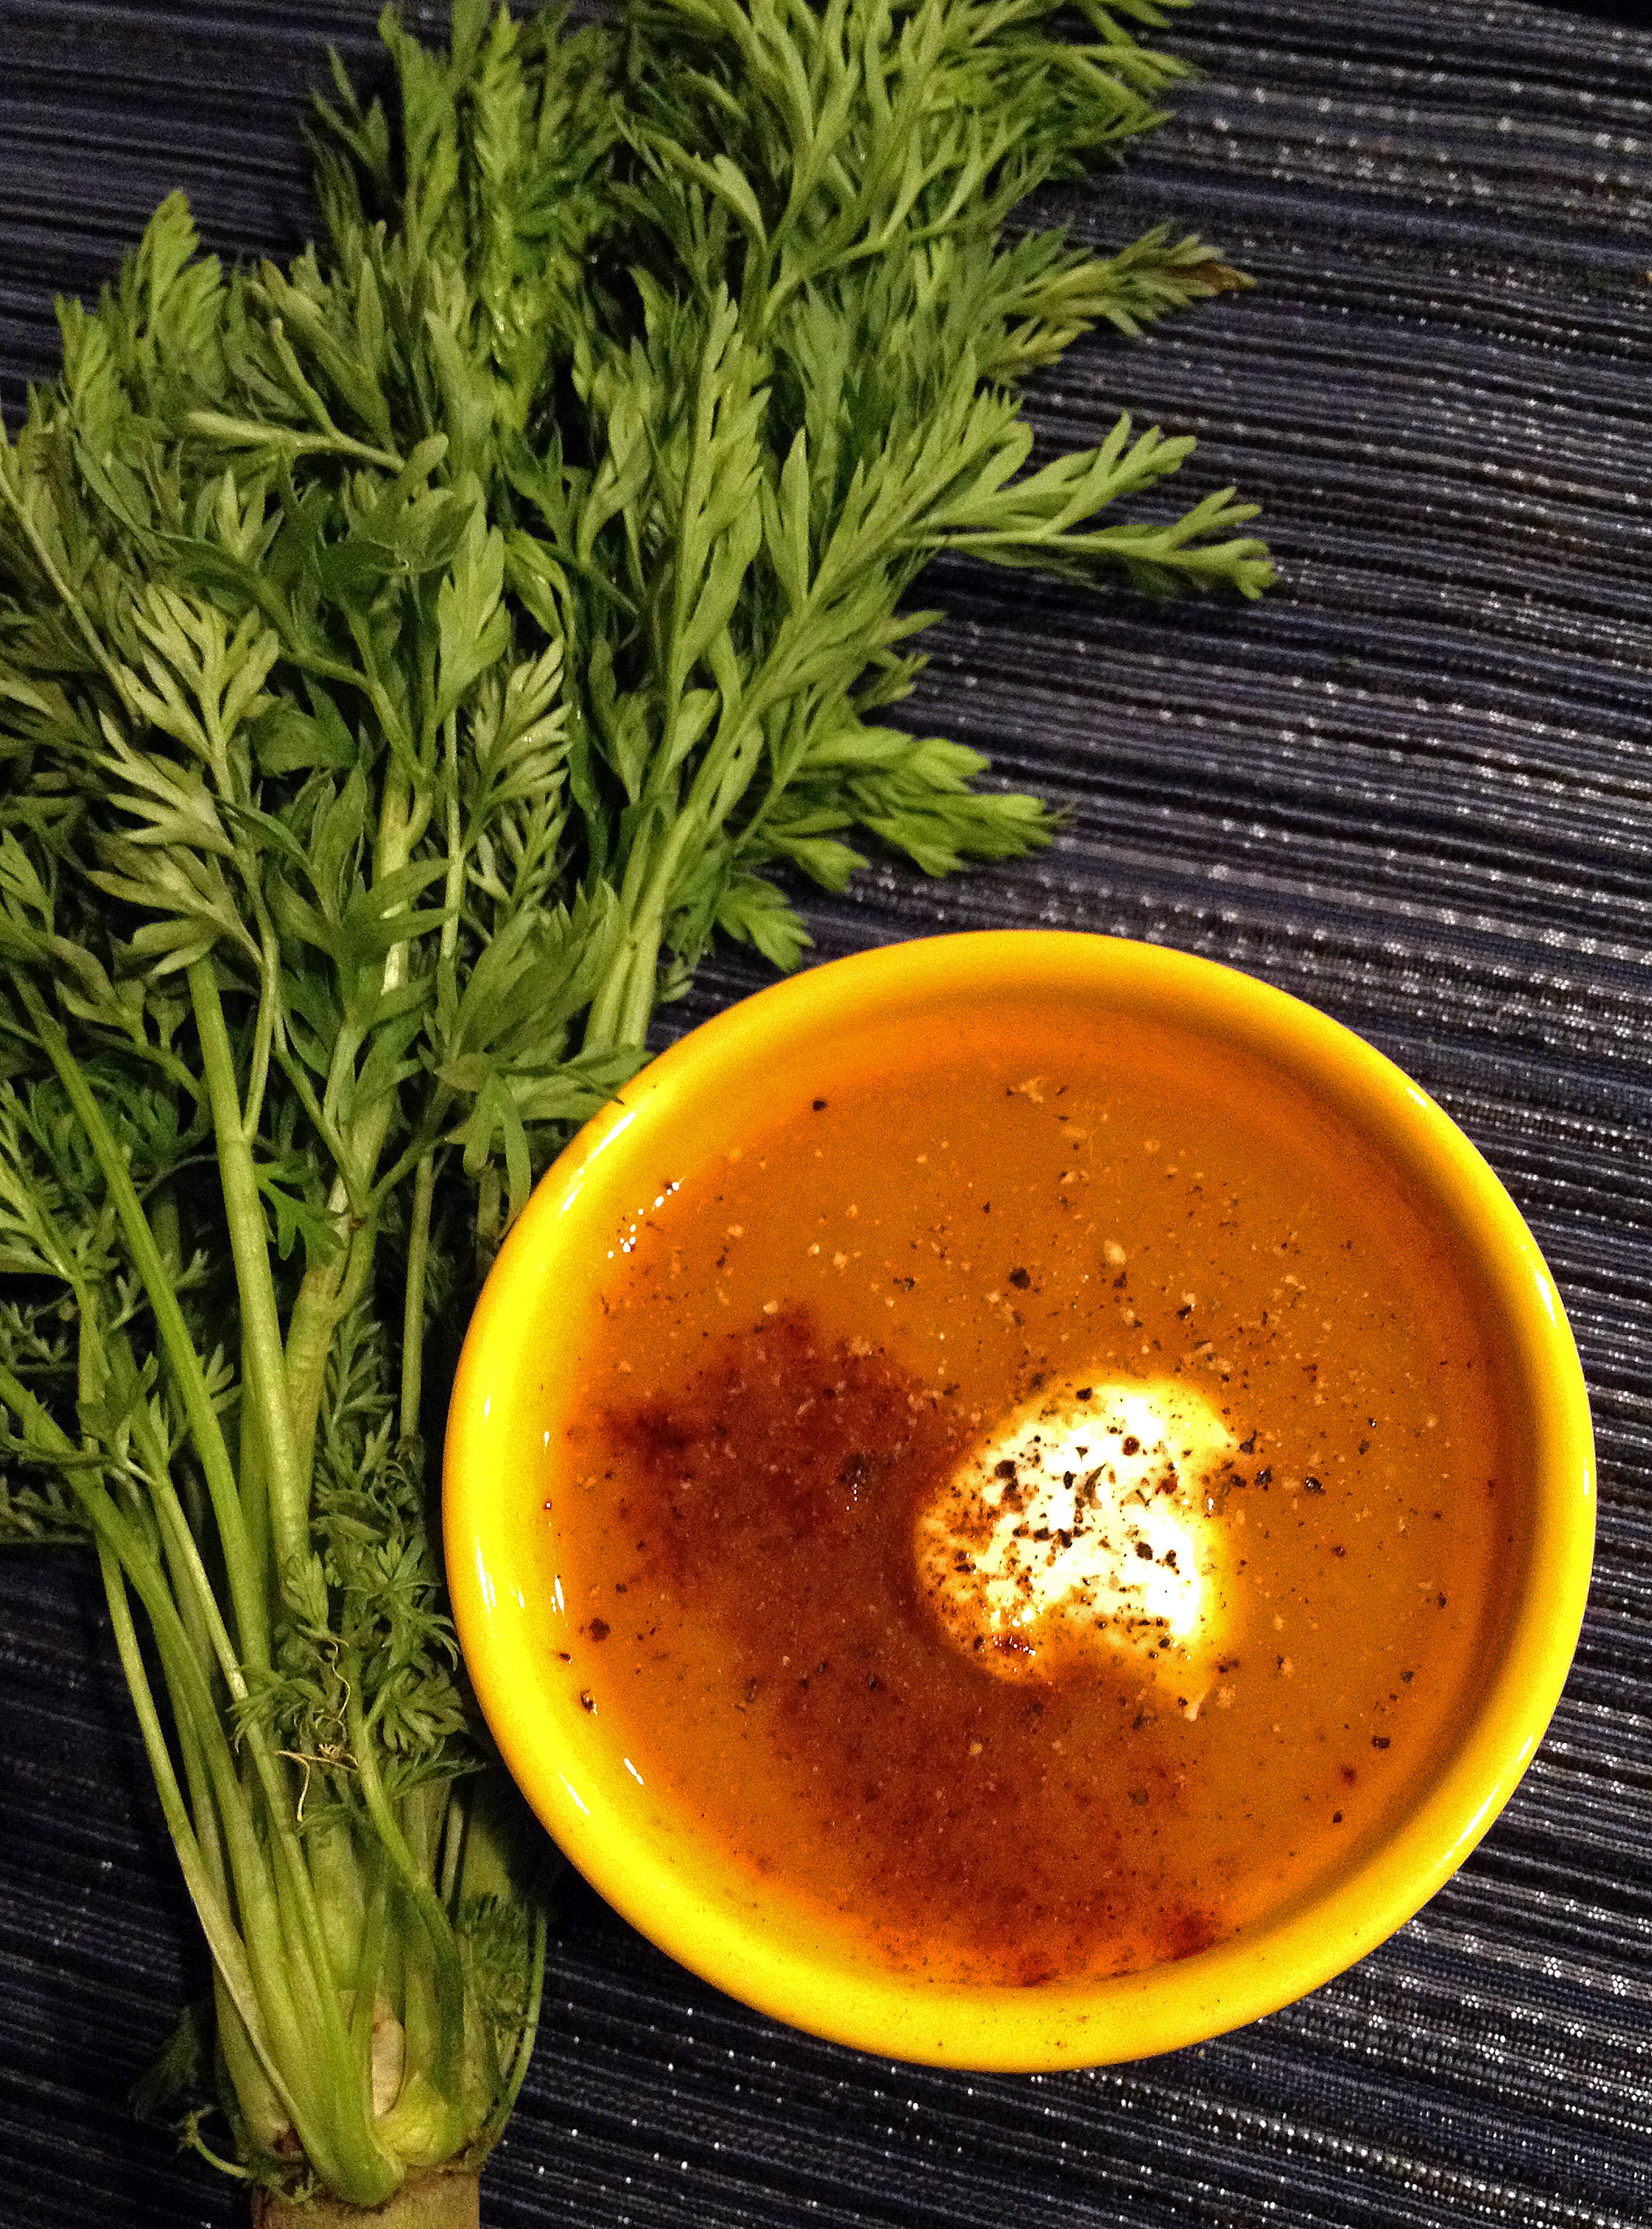 Morroccan Carrot Soup